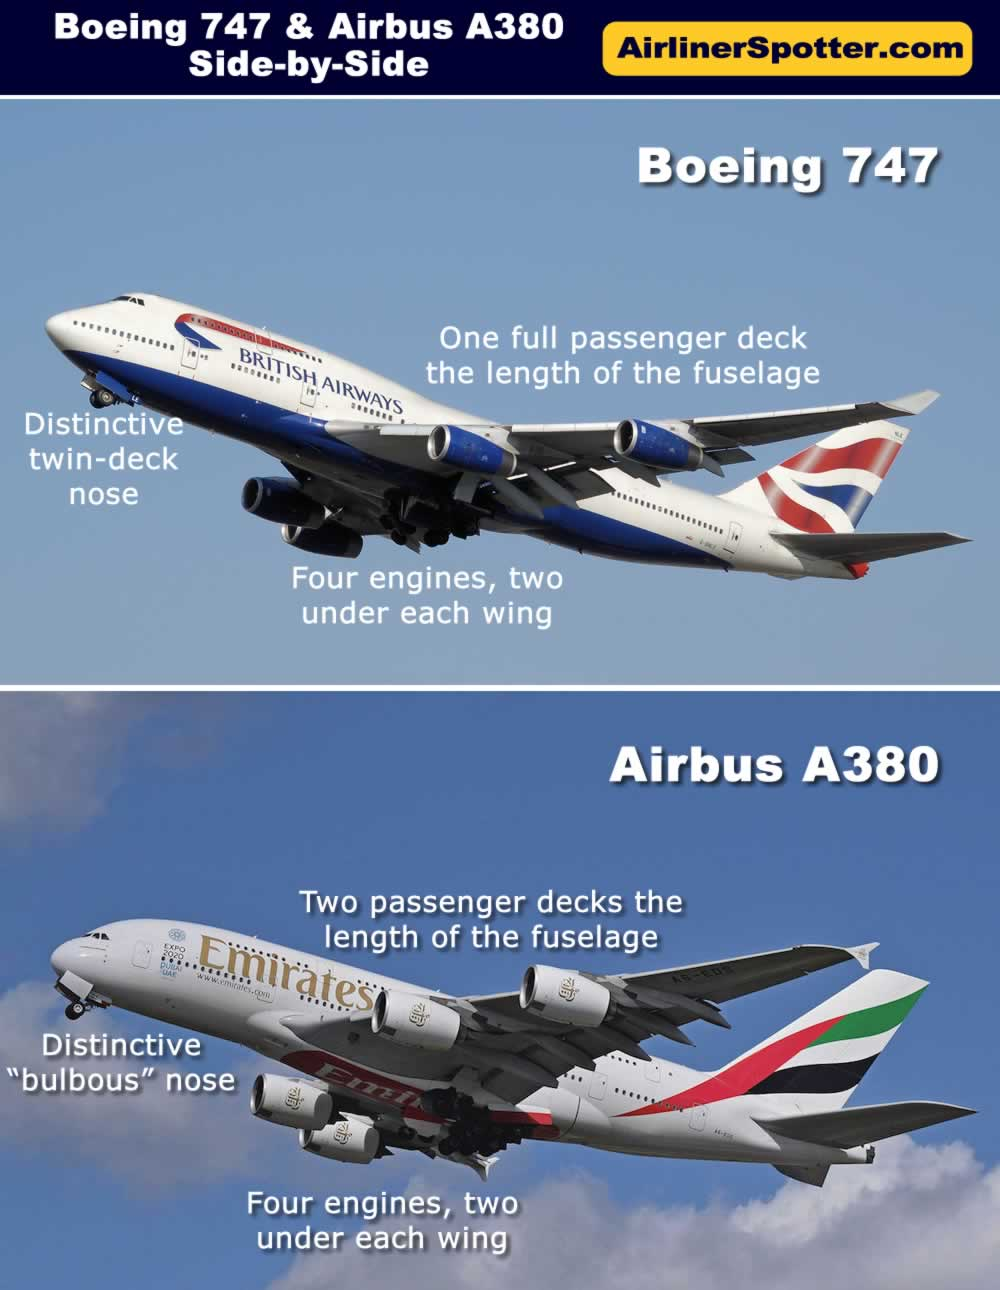 Airbus and Boeing Airliner Side-by-Side Comparisons